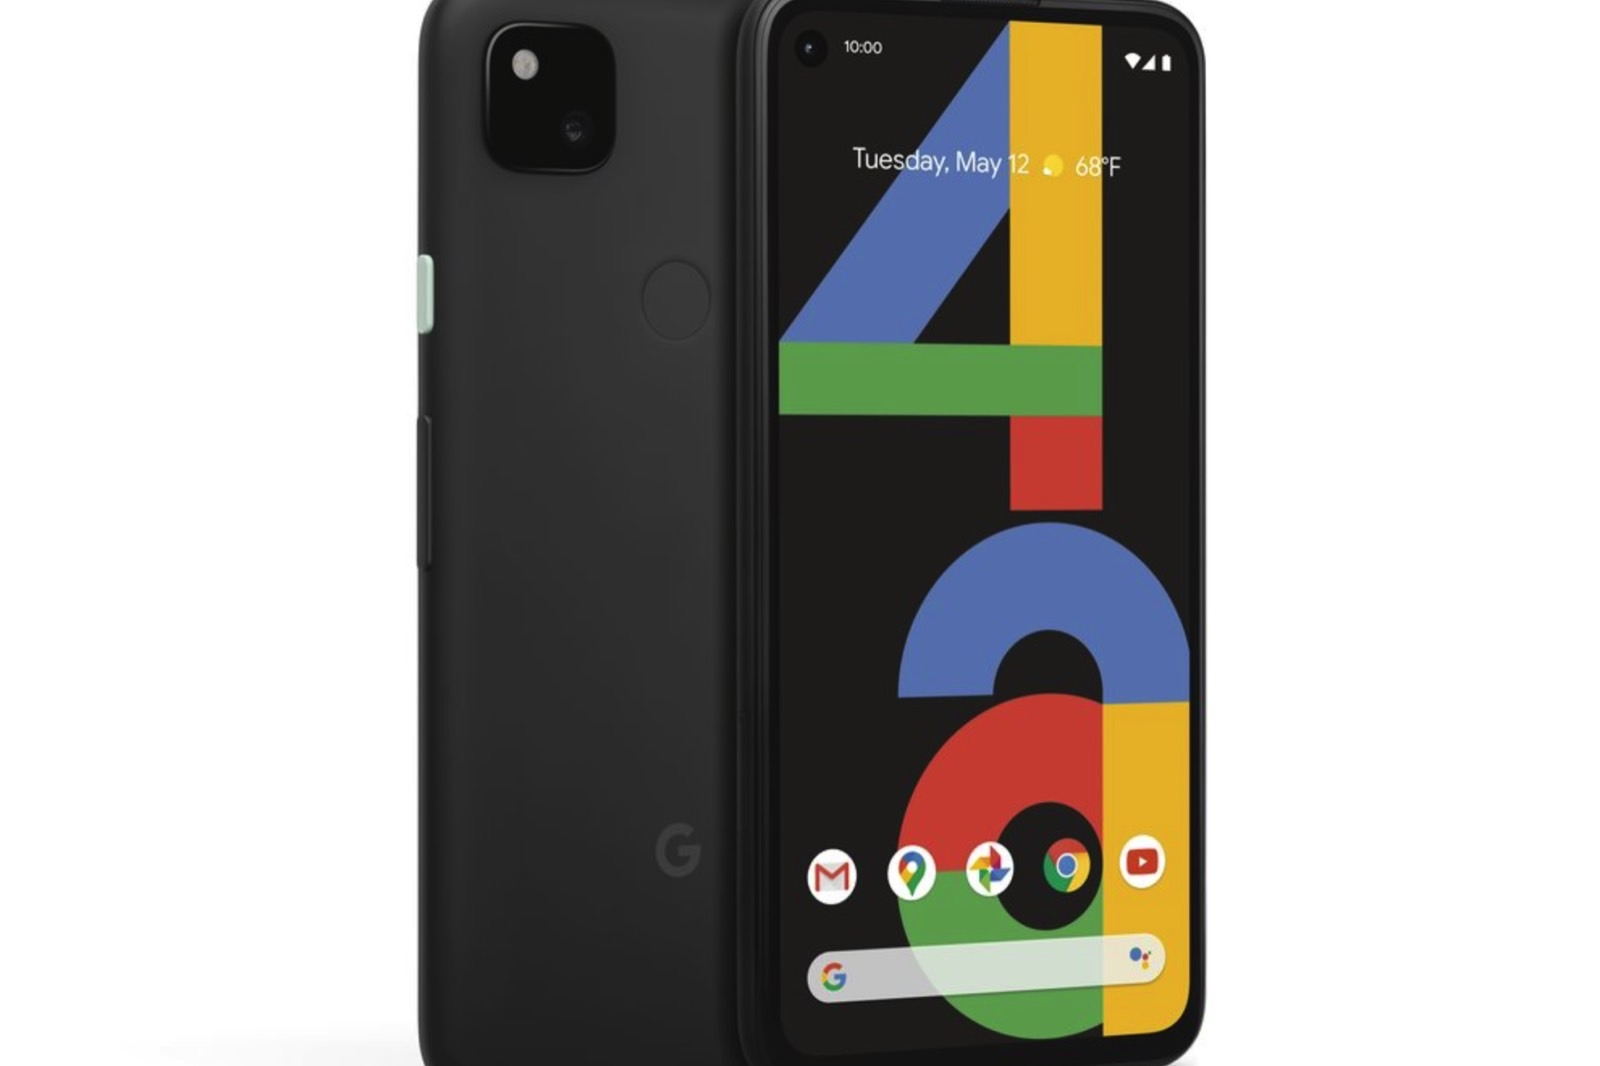 What's going on with Google's Pixel 5 launch? – BGR